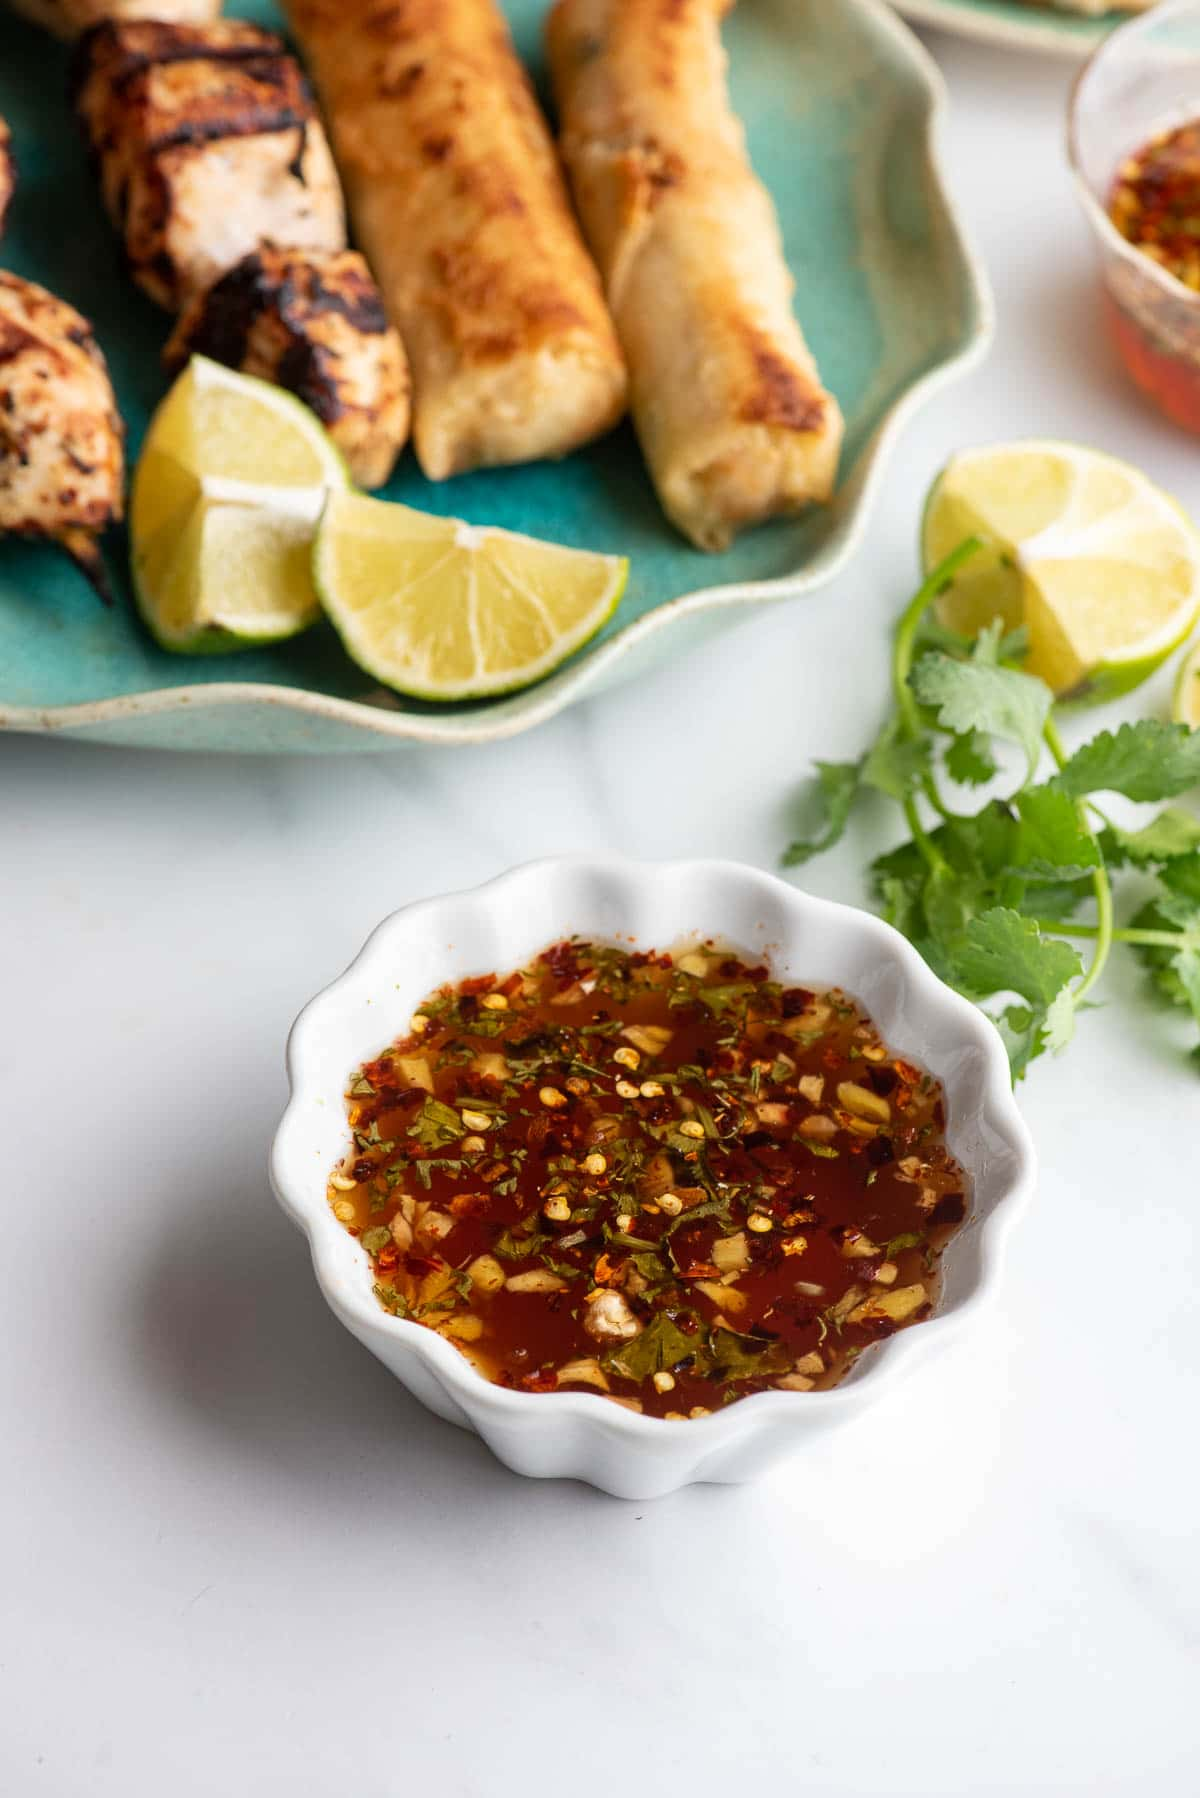 sweet tangy dipping sauce